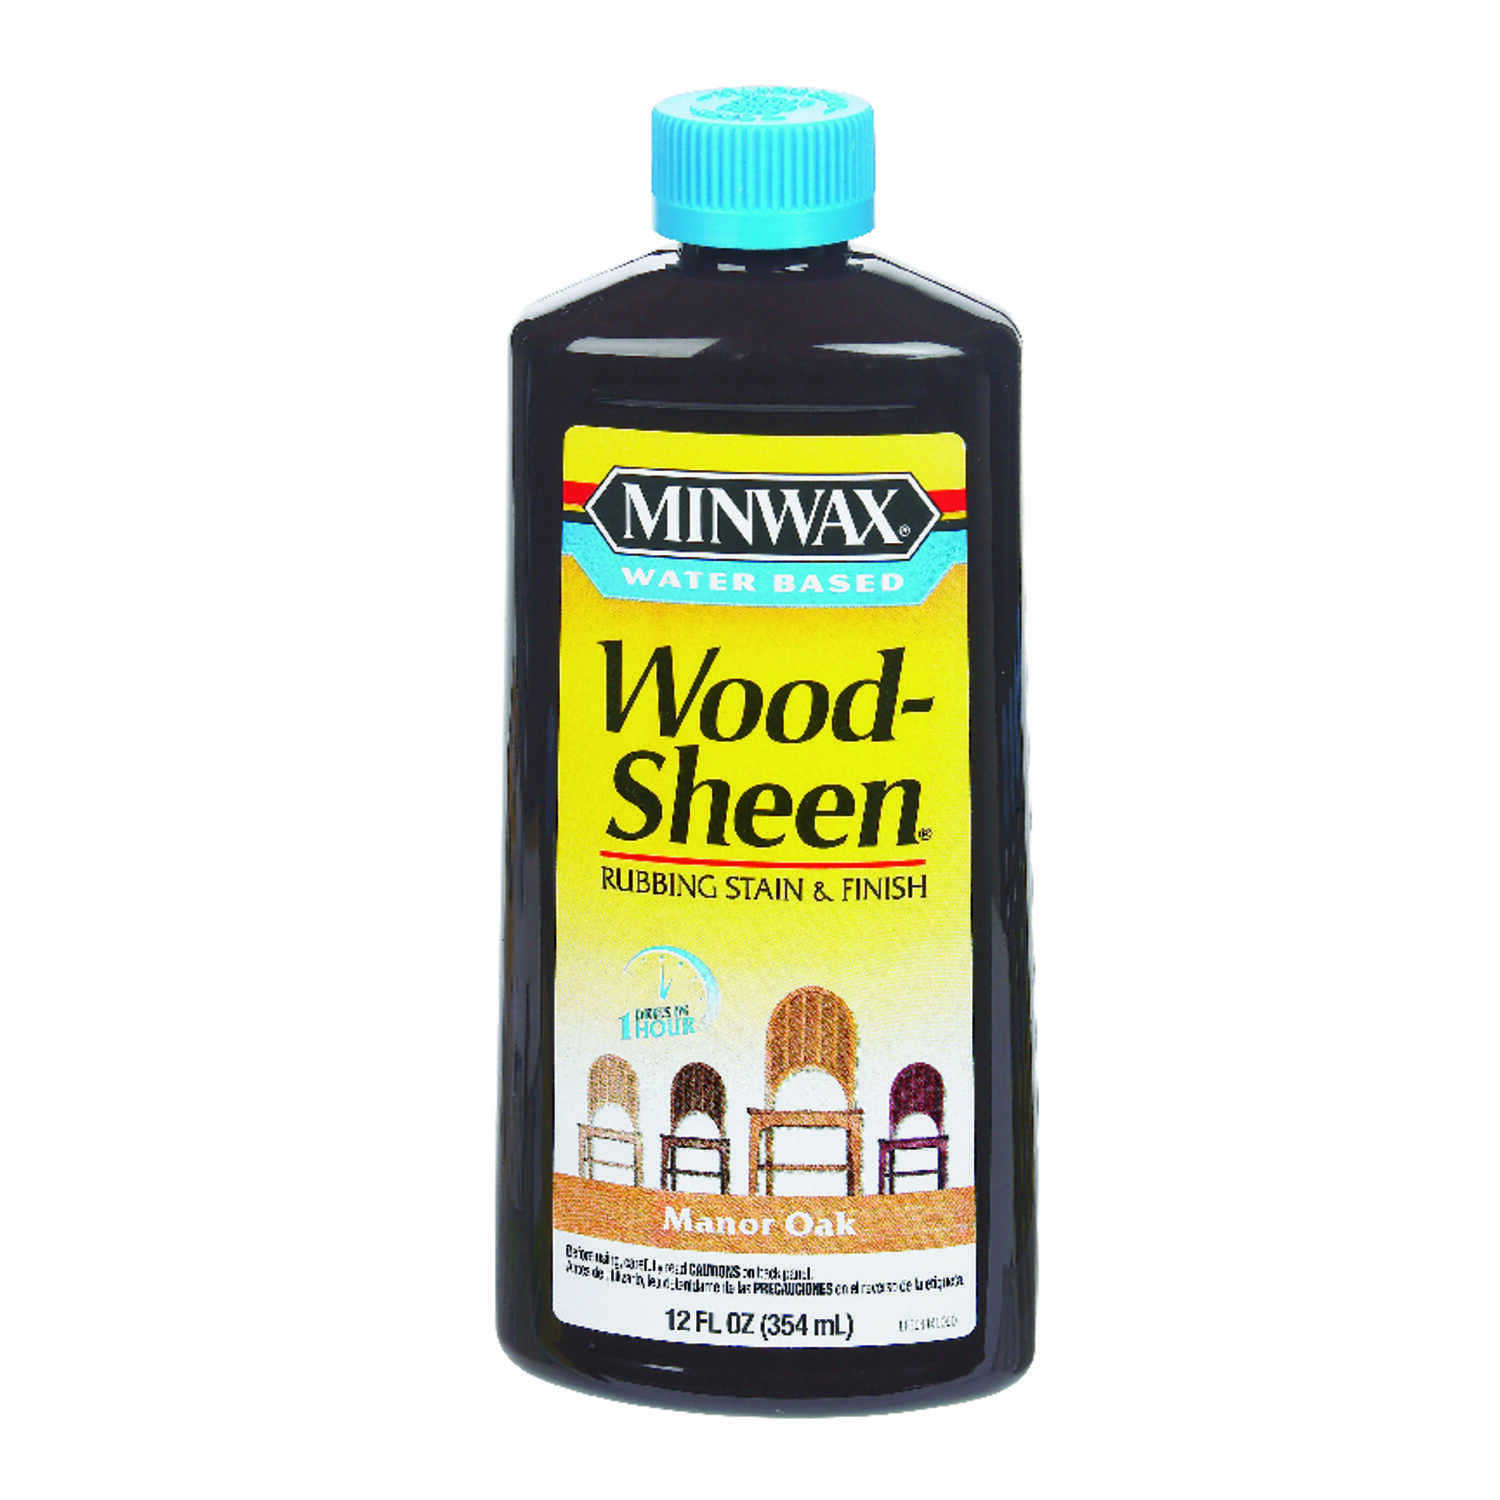 Minwax  Wood-Sheen  Transparent  Manor Oak  Deep Base  Latex  Rubbing Stain and Finish  12 oz.